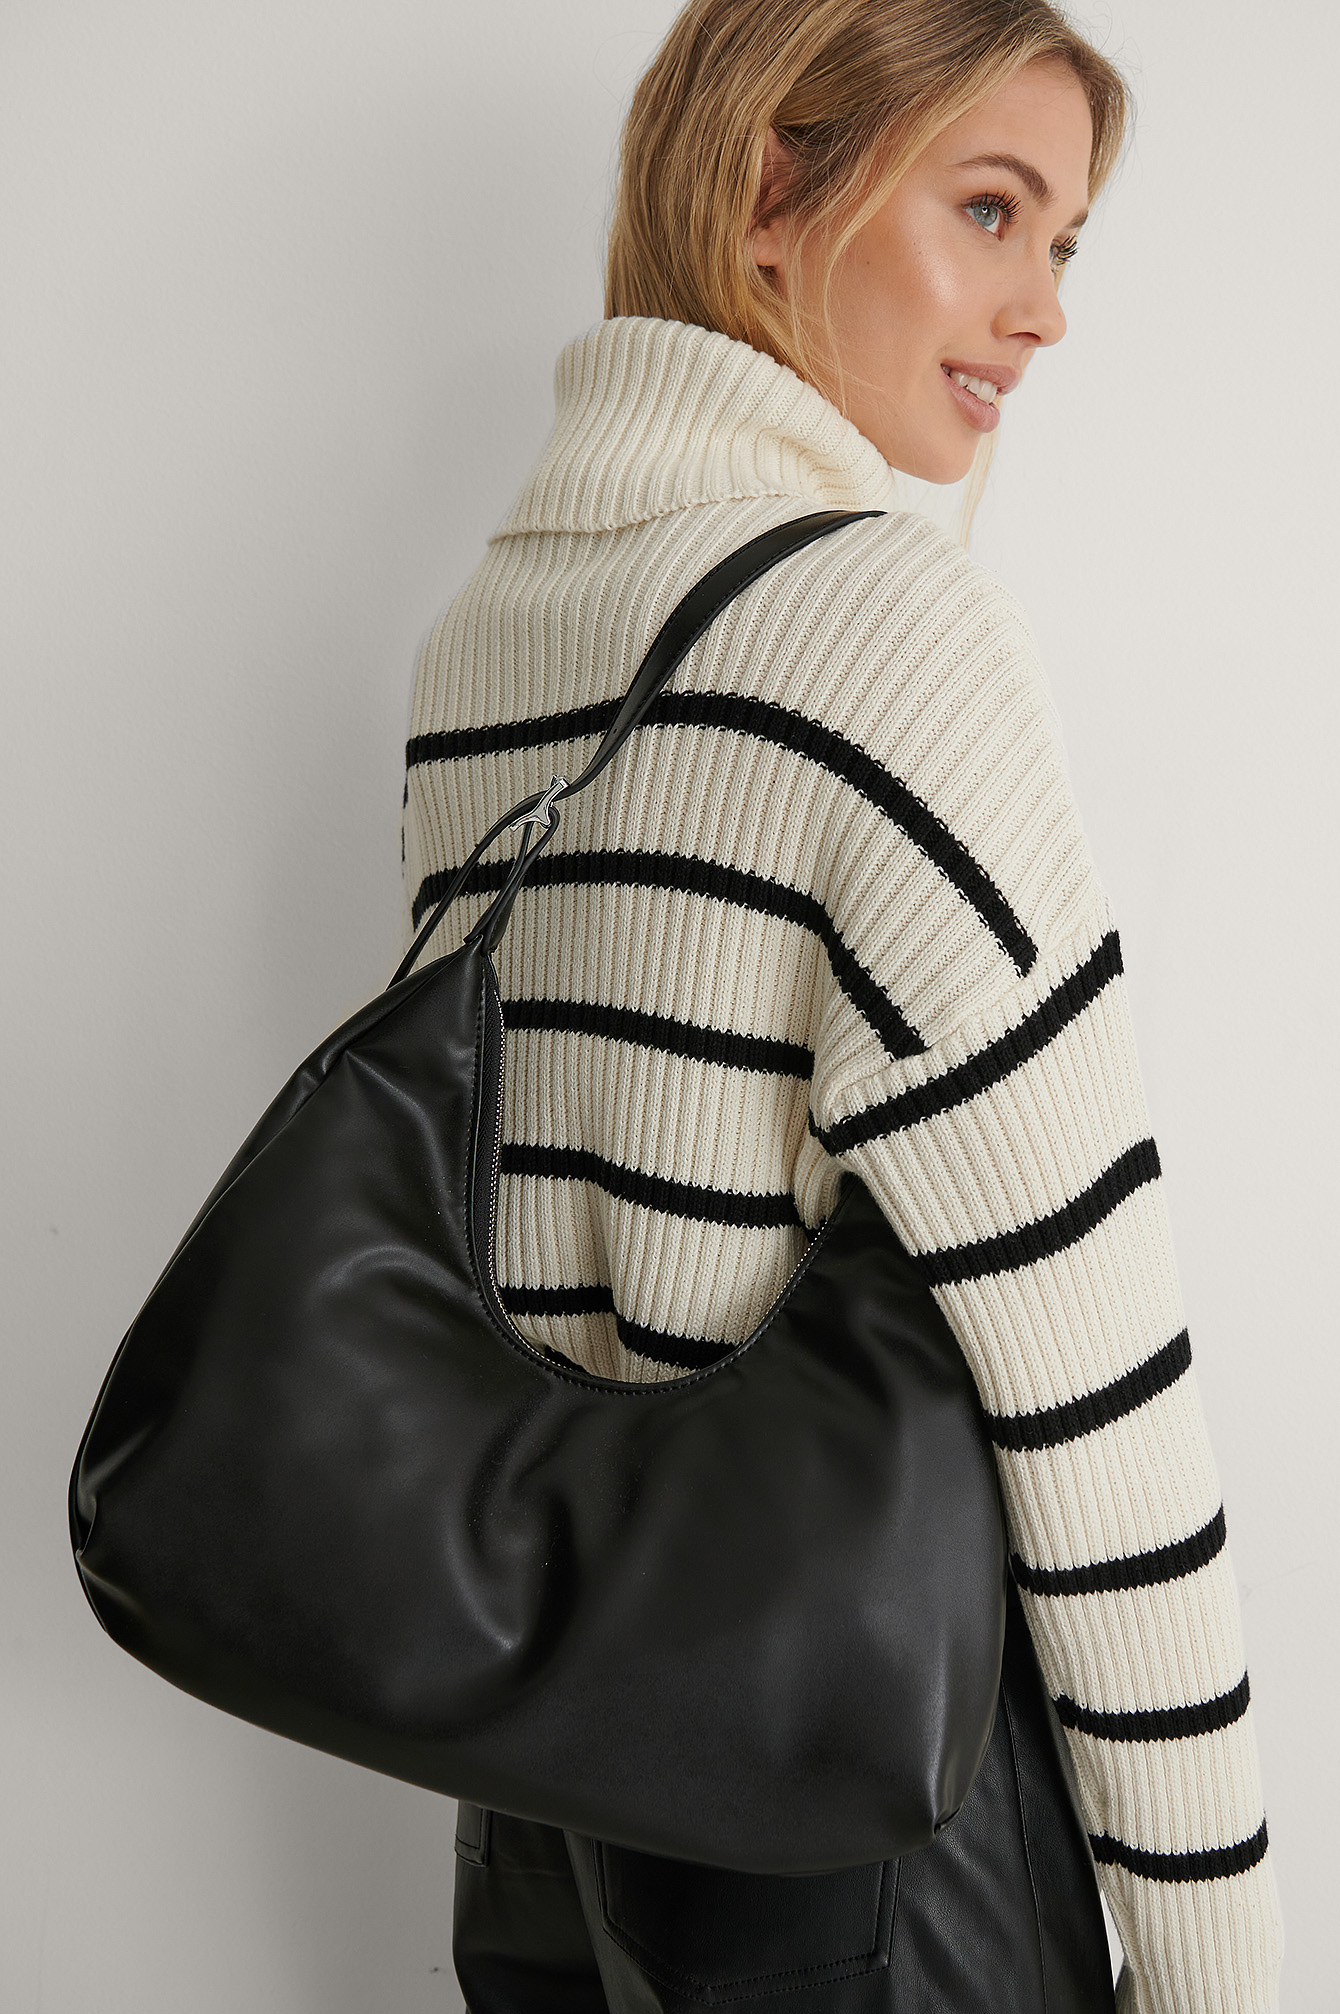 Black Rounded Shoulder Bag